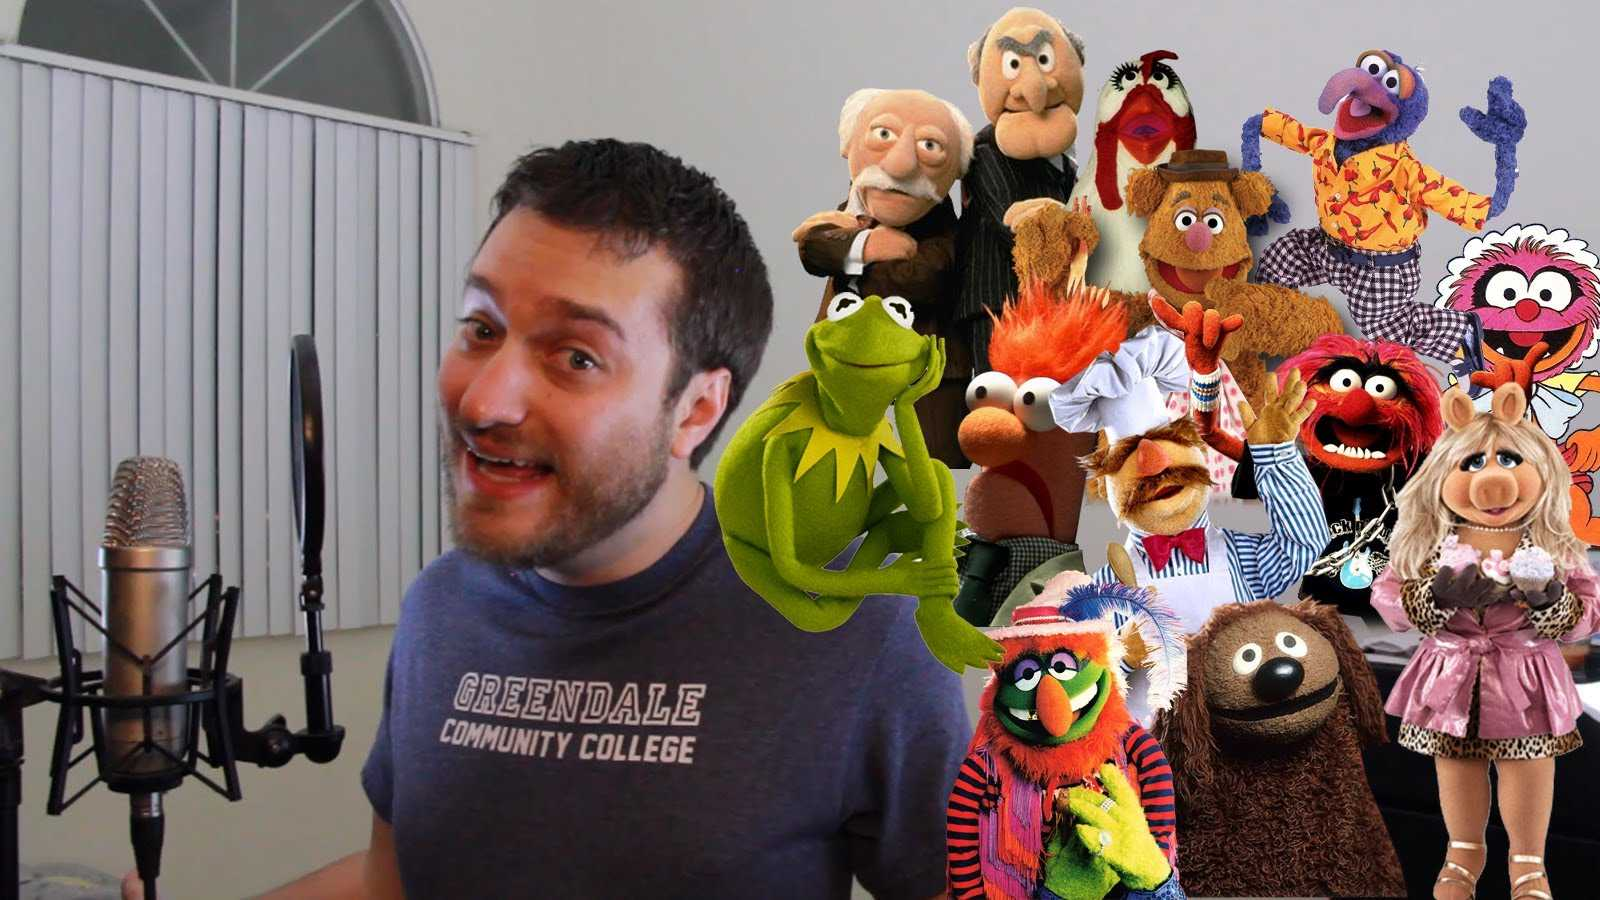 Brock Baker Brings The Muppets To Life Impersonating Their Voices While Singing